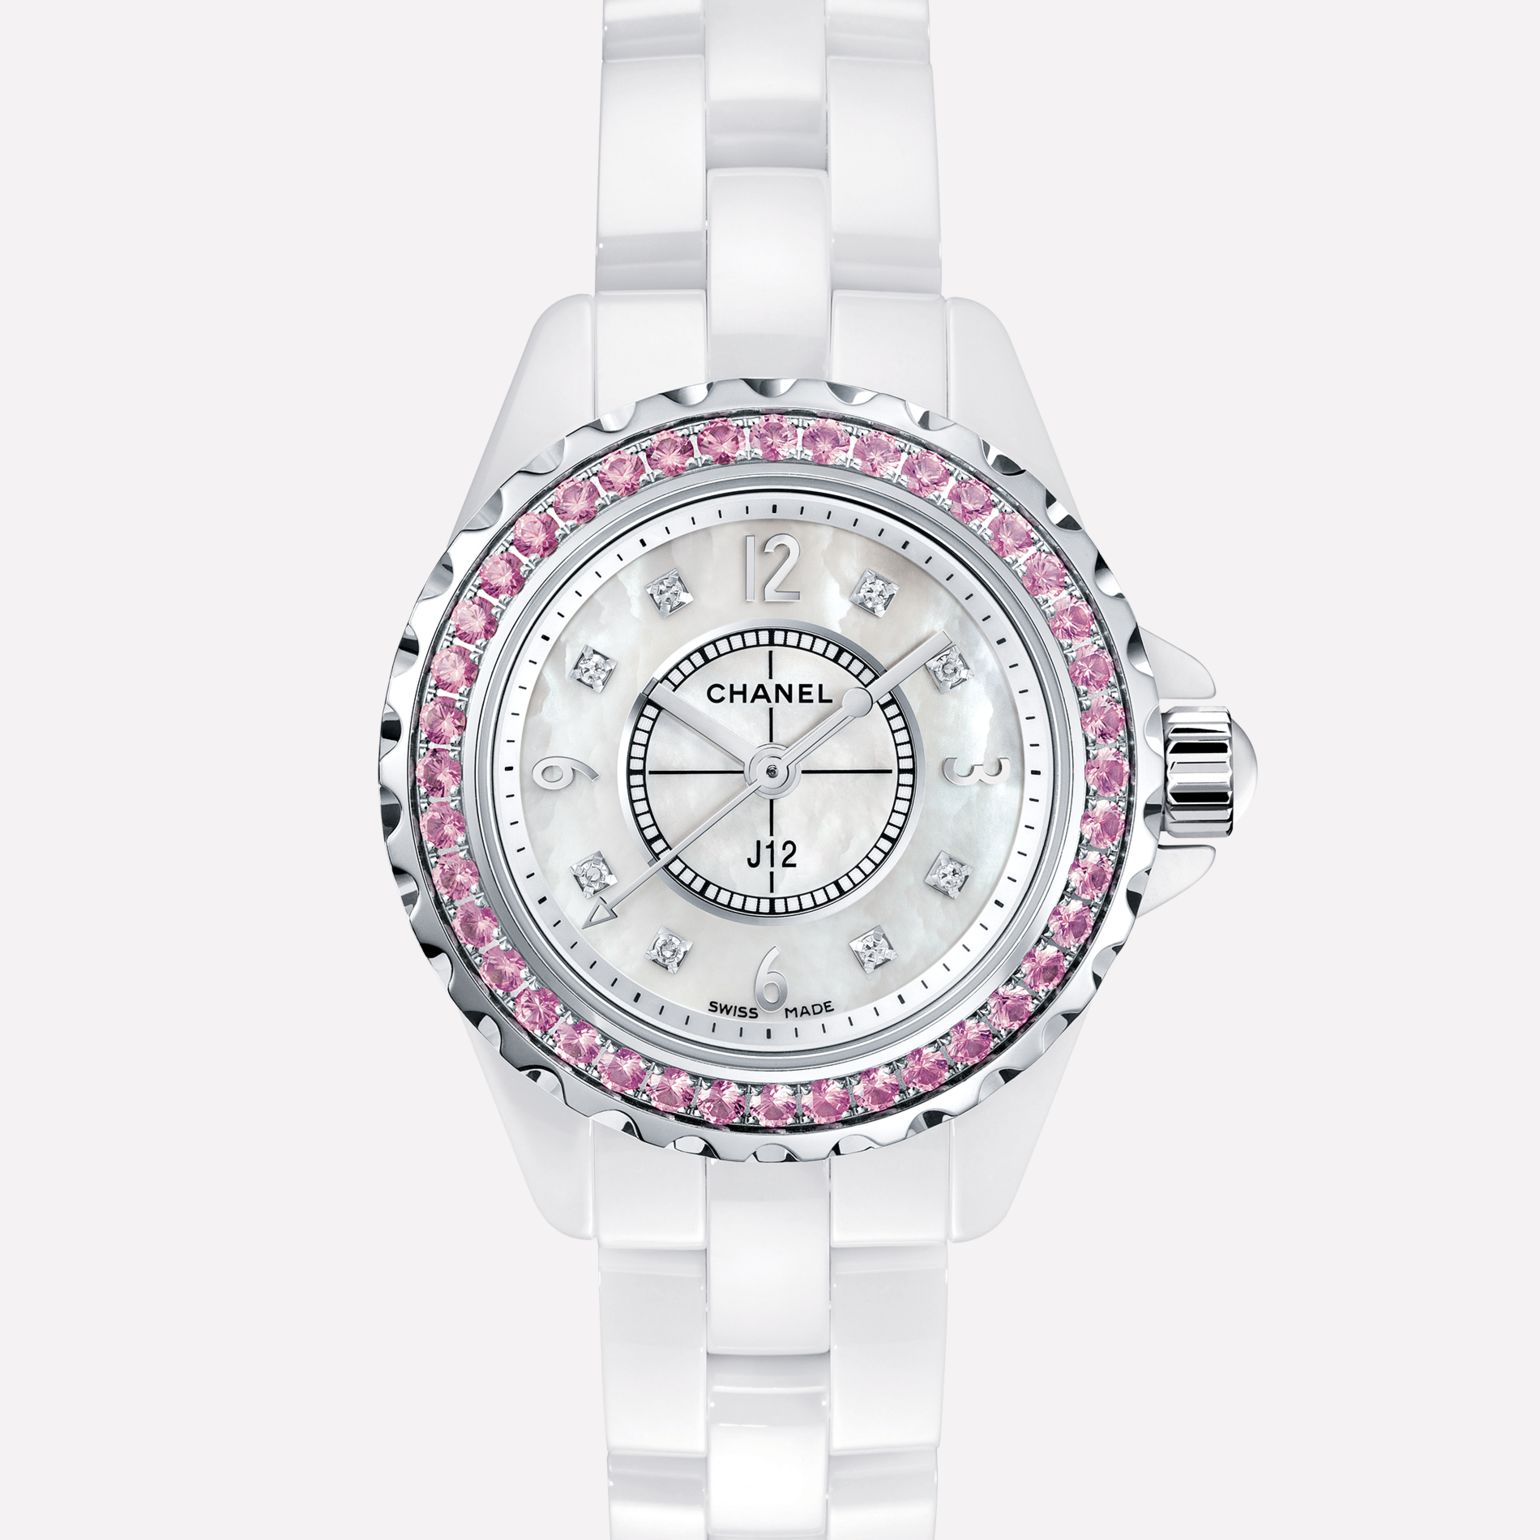 J12 White ceramic and steel, bezel set with pink sapphires, diamond indicators, mother-of-pearl dial